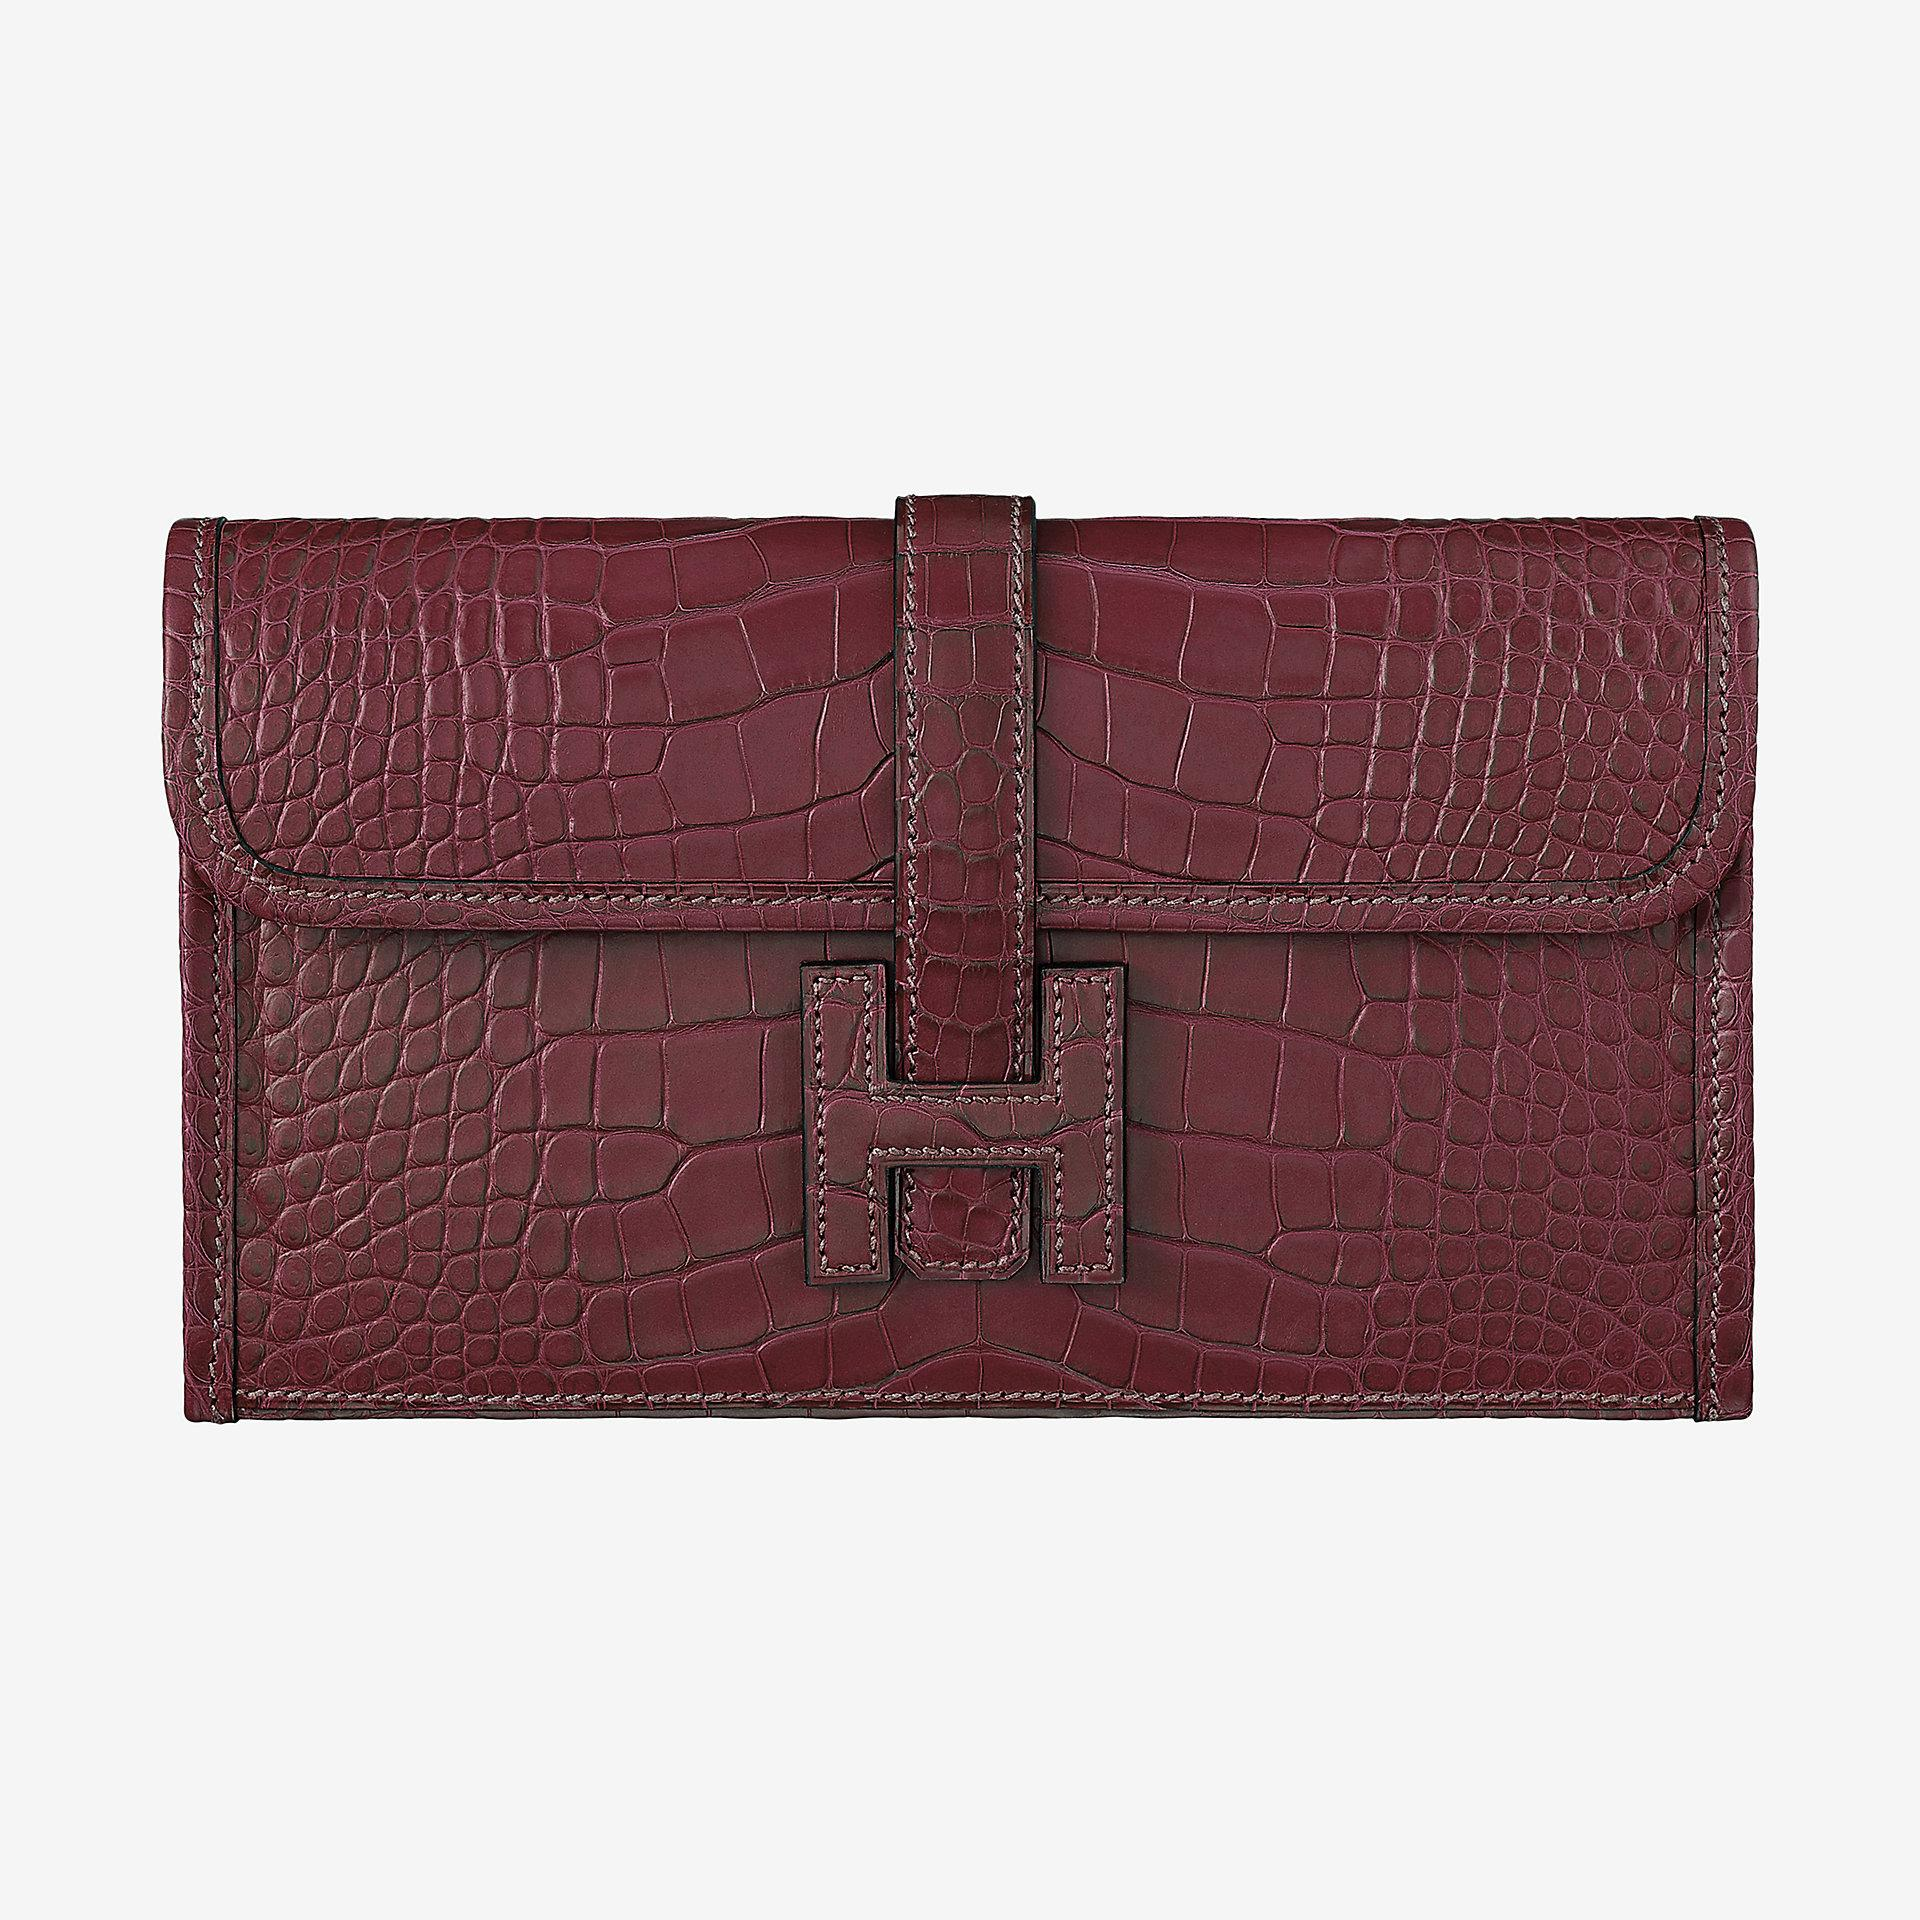 臺灣臺北市 Hermes Jige Duo wallet CA57 bordeaux alligator